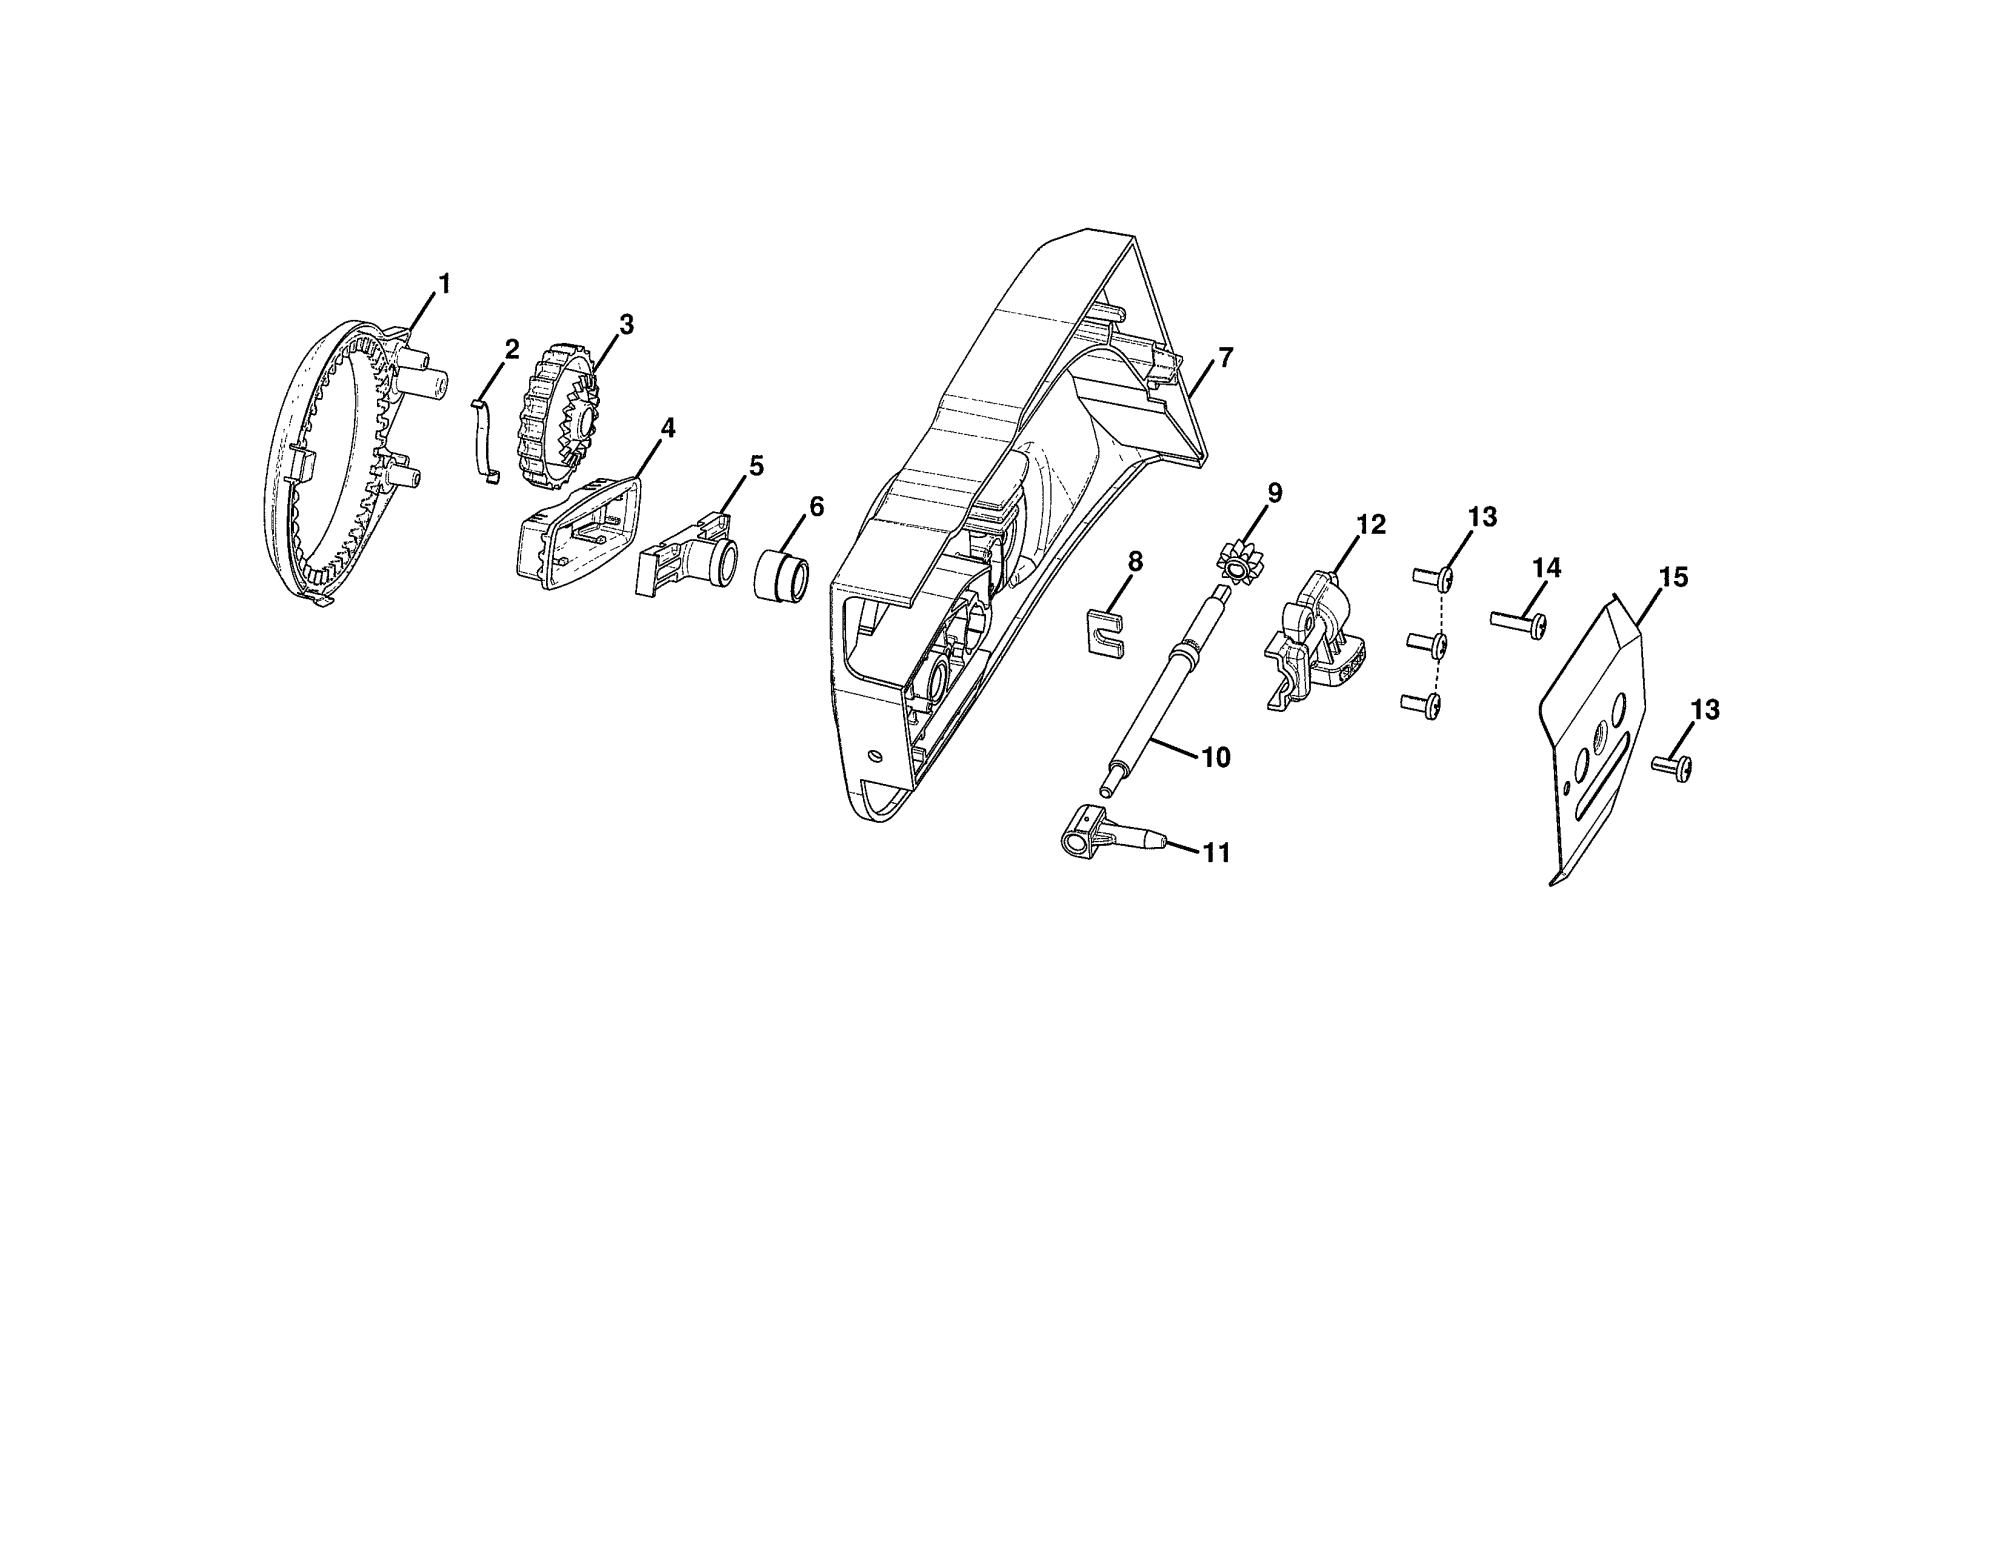 hight resolution of homelite ut10519 clutch gear covers diagram